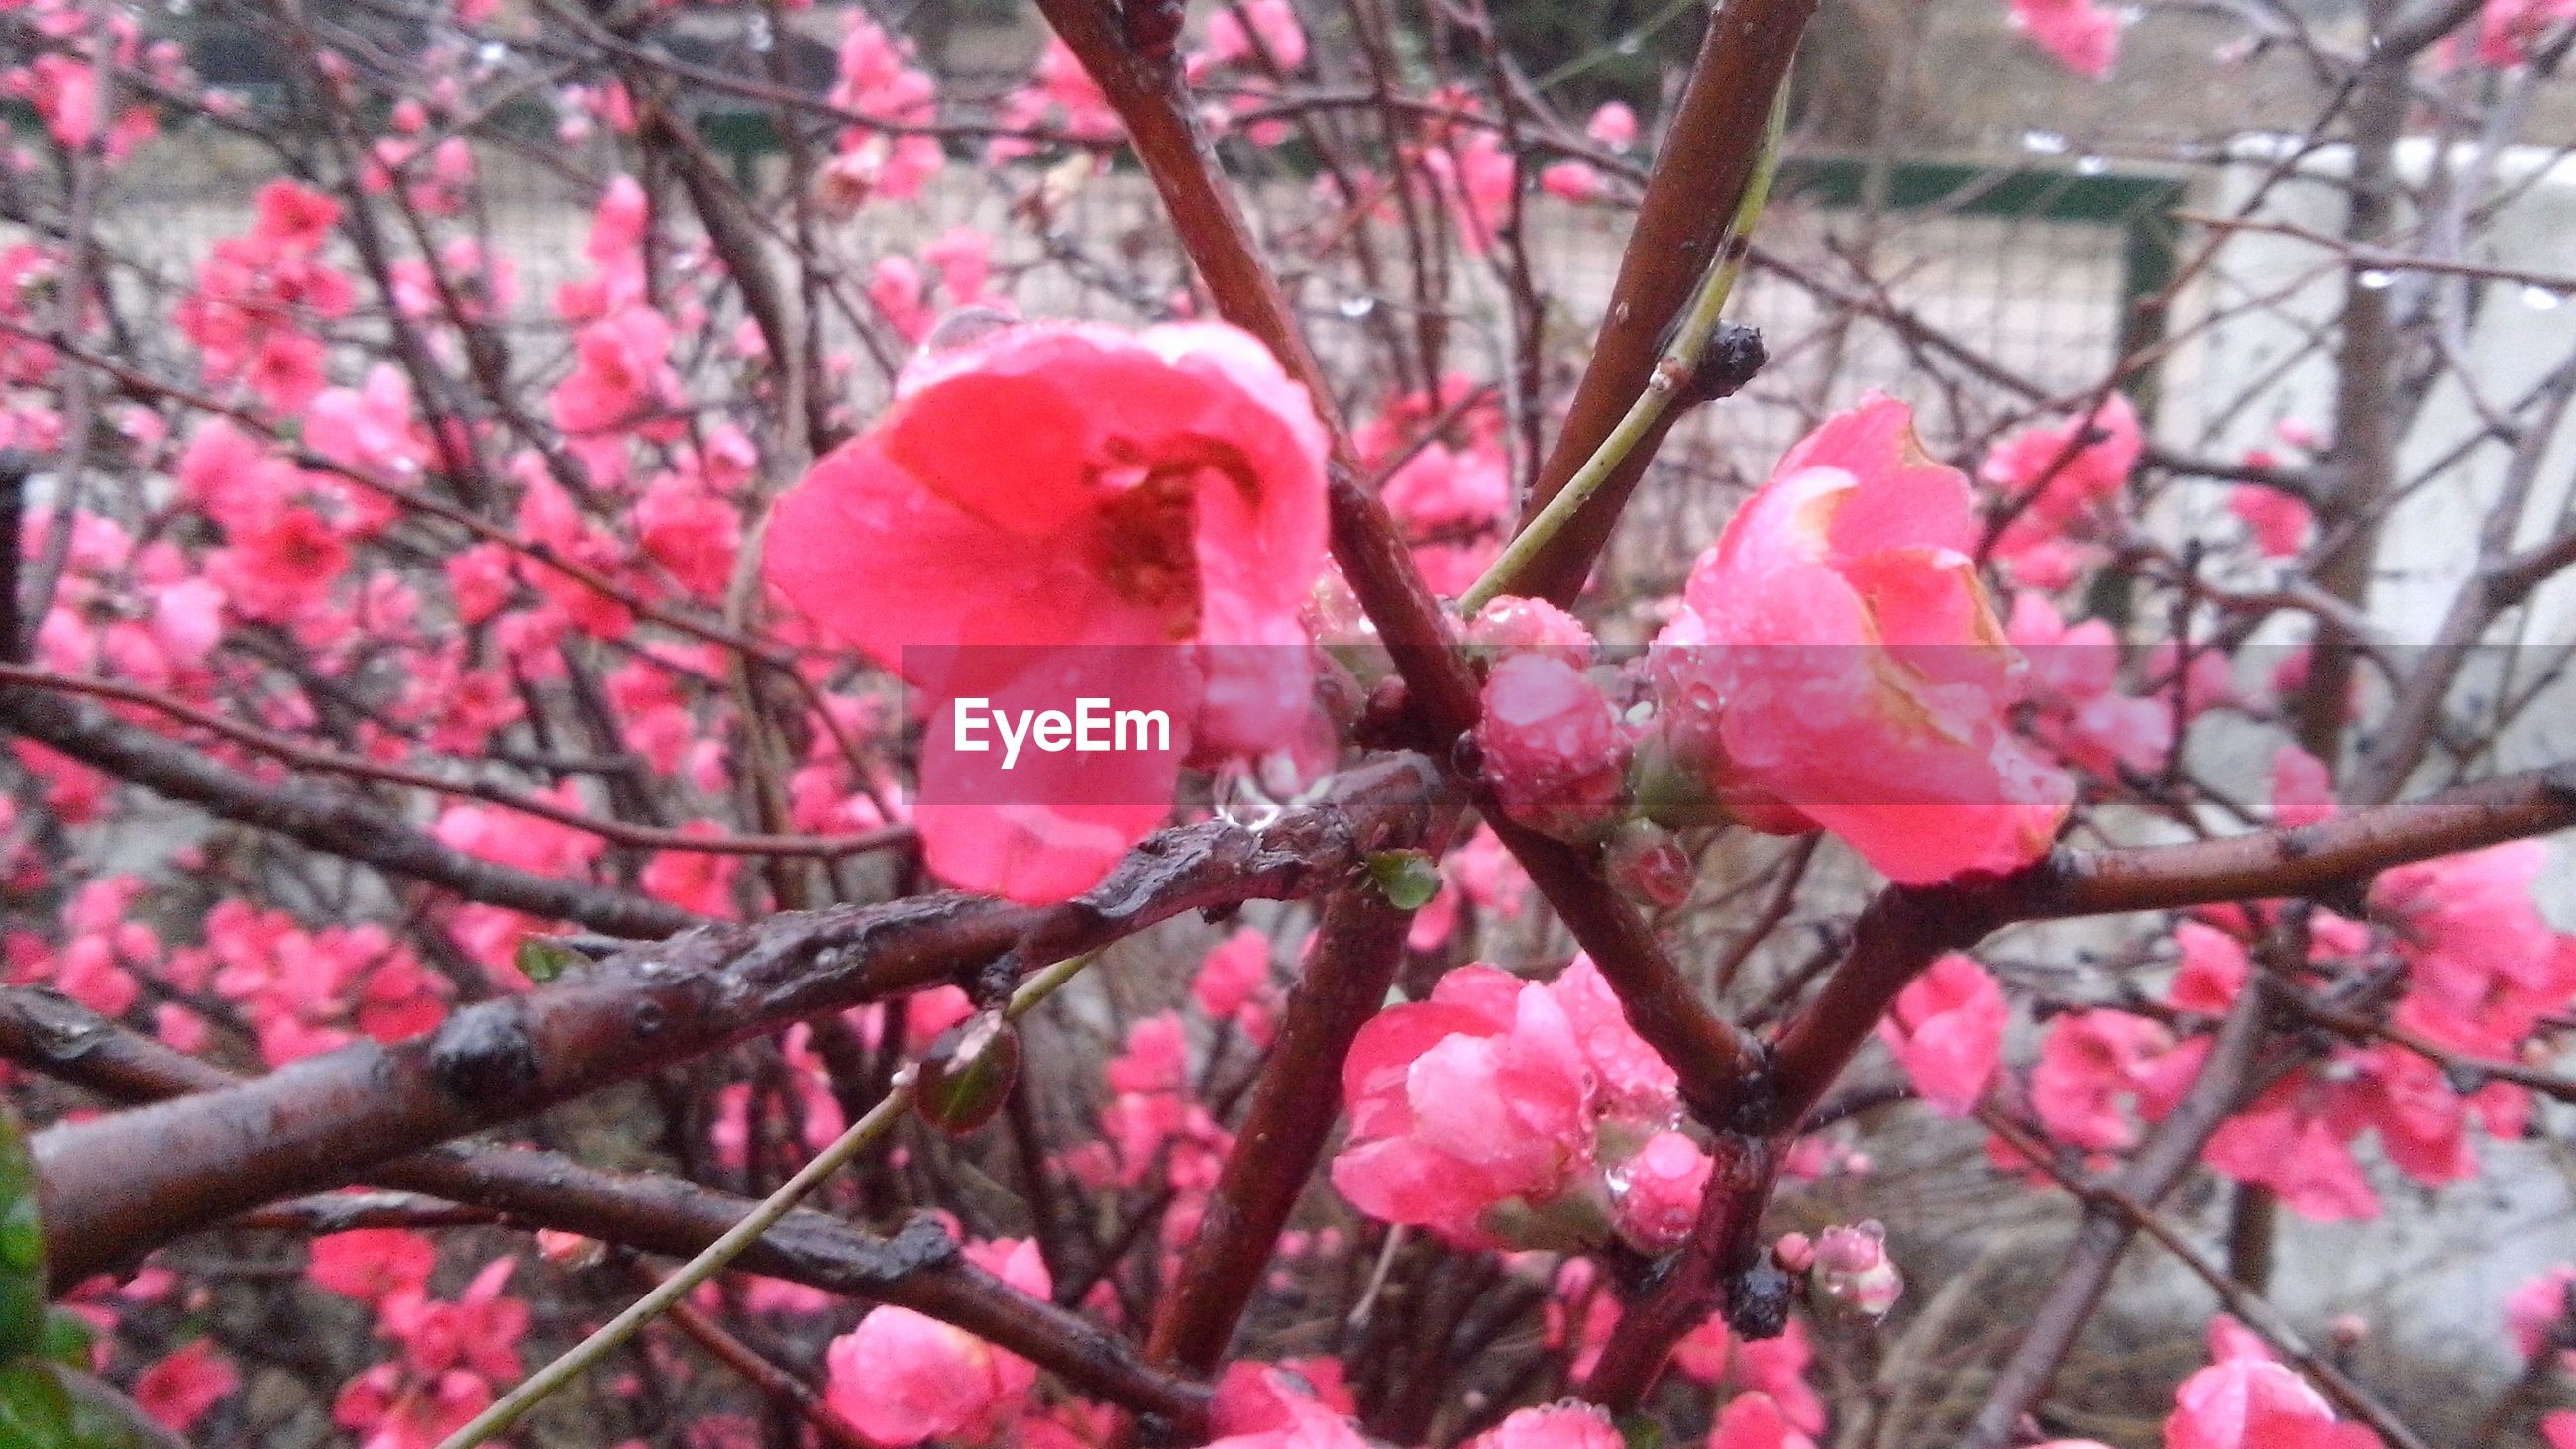 flower, pink color, freshness, growth, fragility, branch, beauty in nature, nature, focus on foreground, close-up, petal, tree, pink, blooming, season, outdoors, day, blossom, plant, selective focus